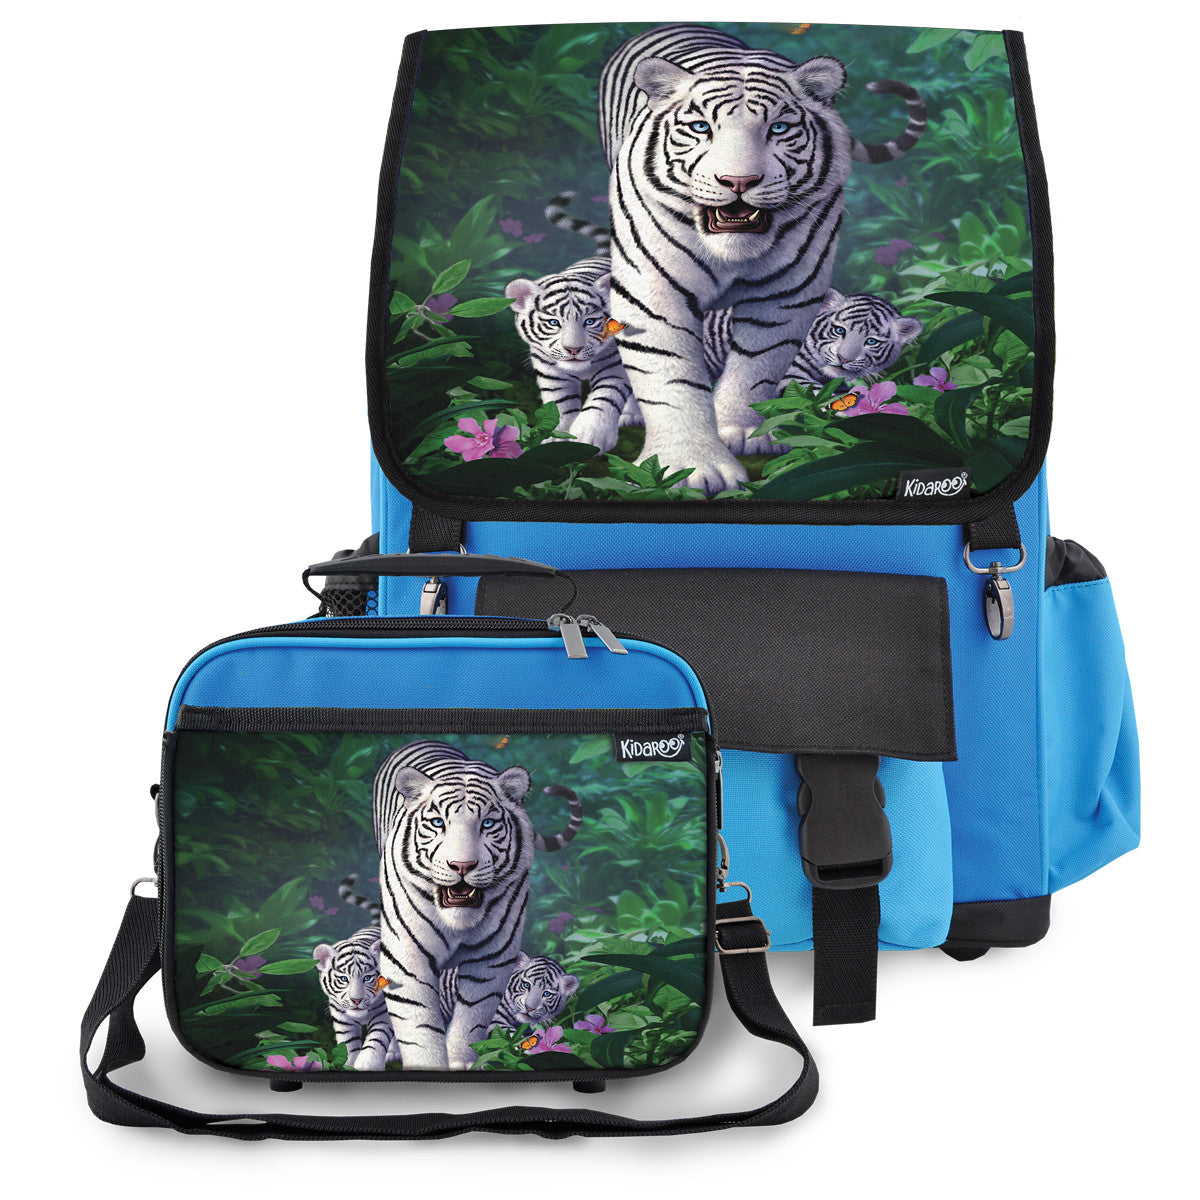 Kidaroo Blue White Tiger & Cubs School Backpack & Lunchbox Set for Boys, Girls, Kids